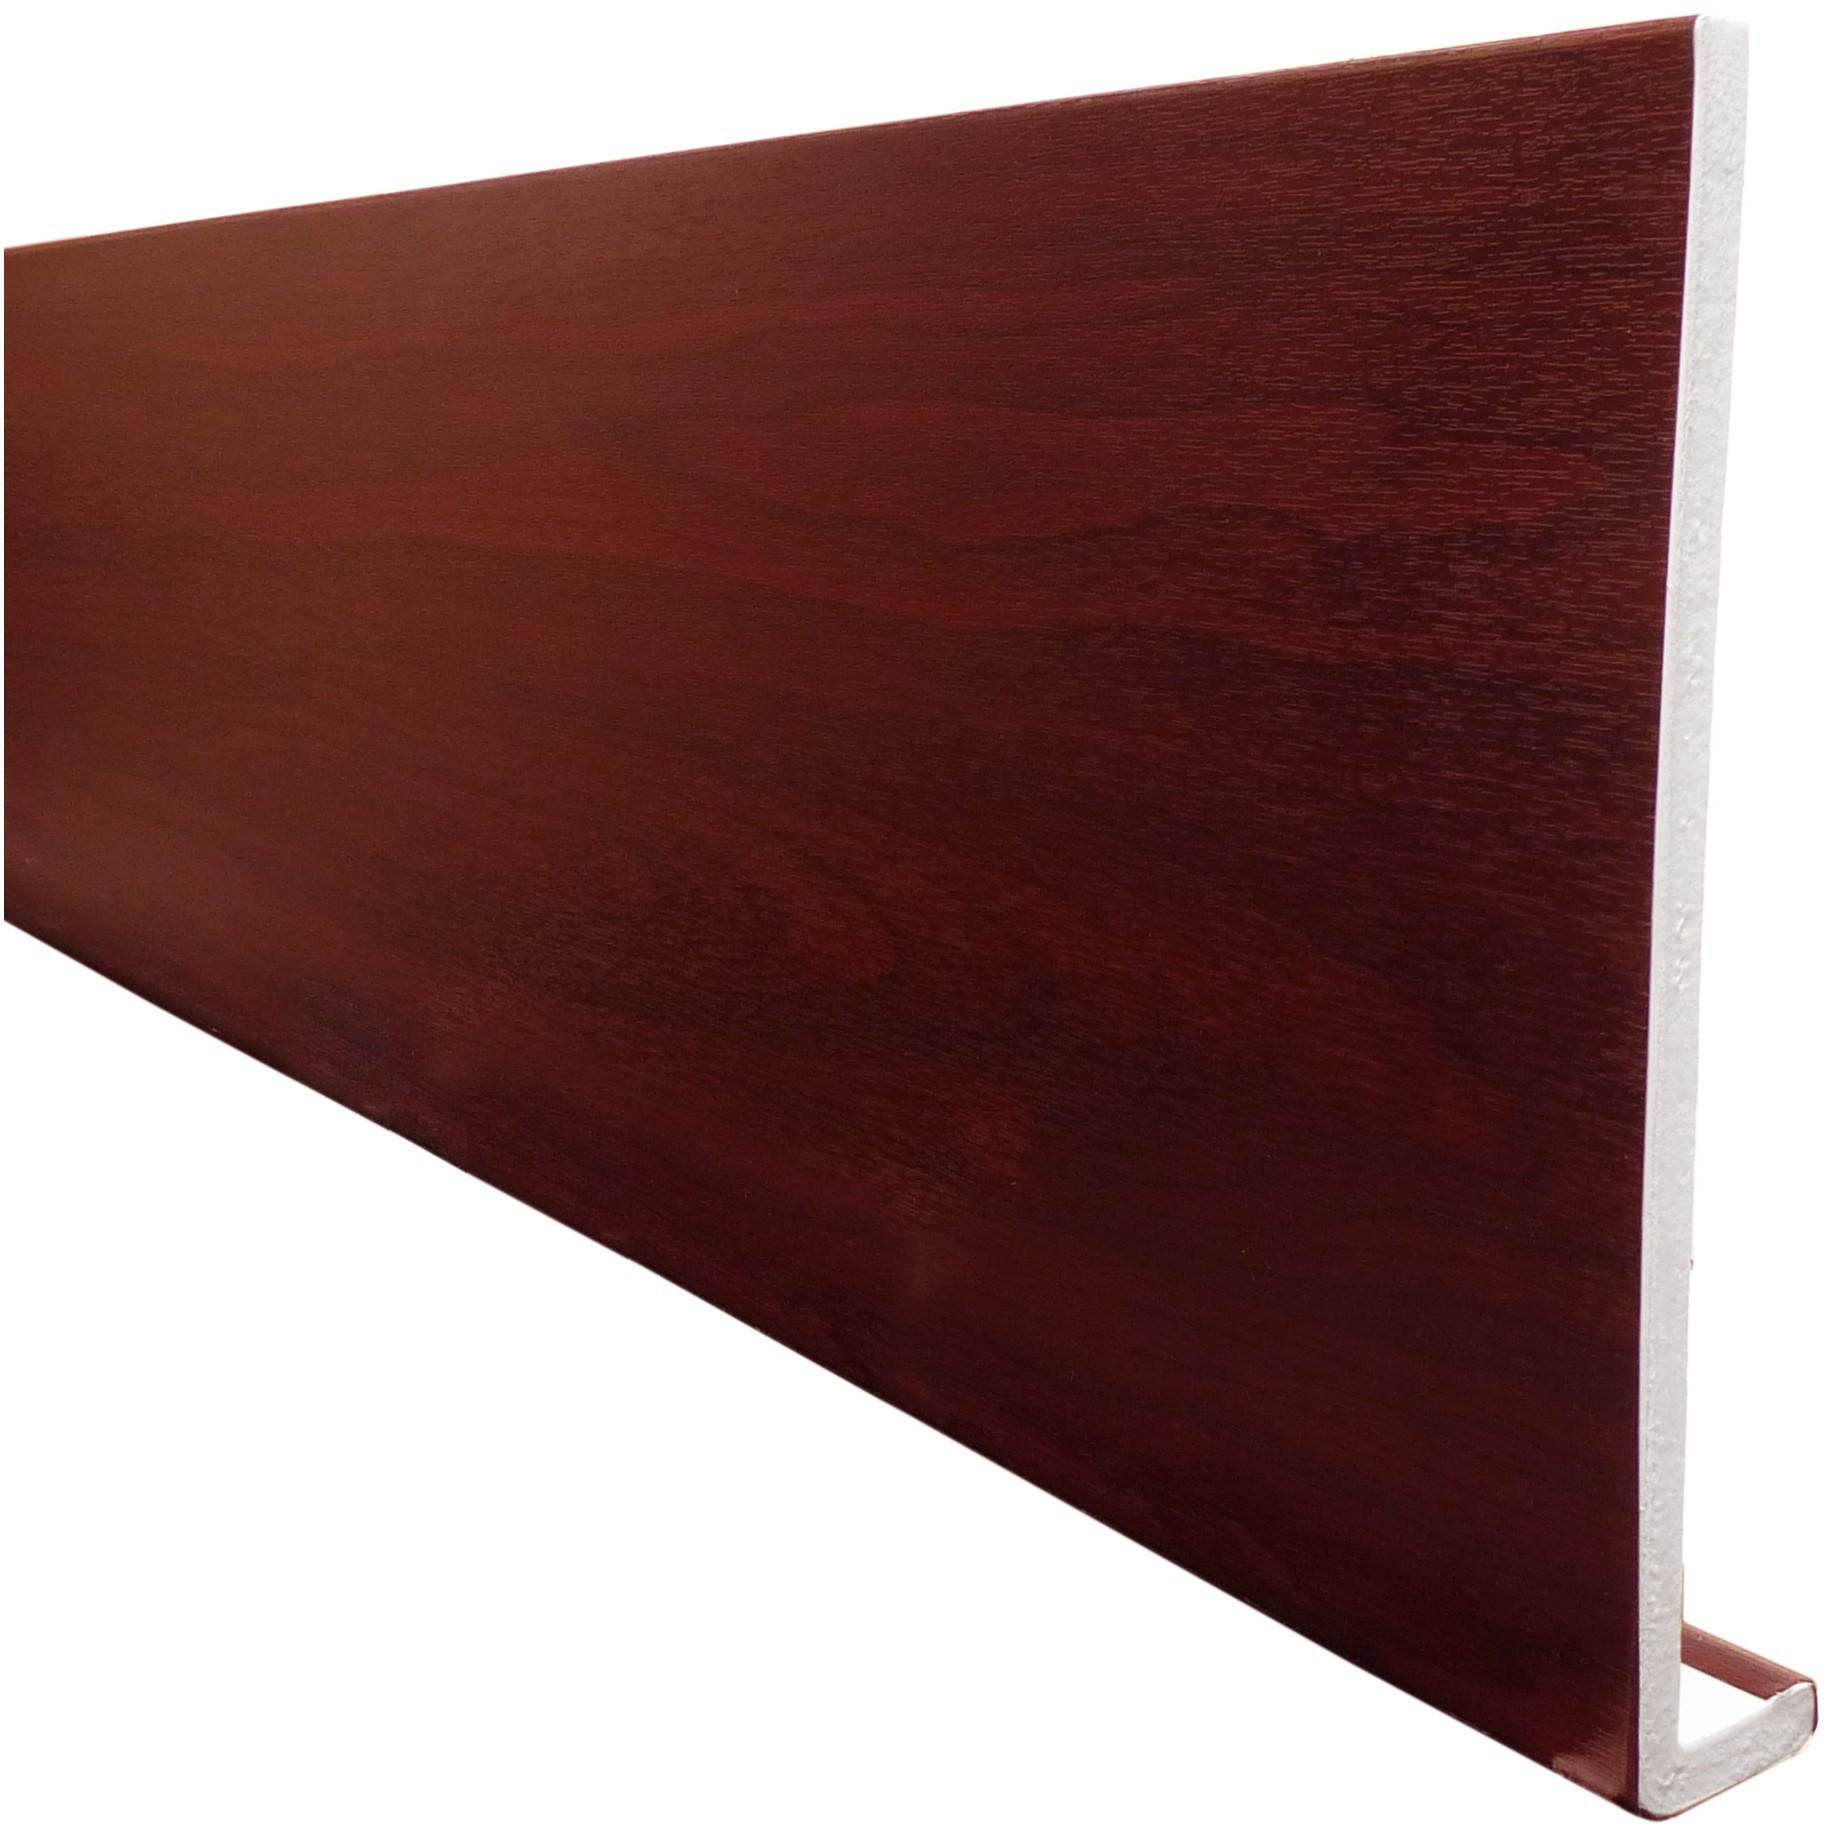 Freefoam Plain 10mm Fascia Board - Woodgrain Rosewood, 300mm, 5 metre